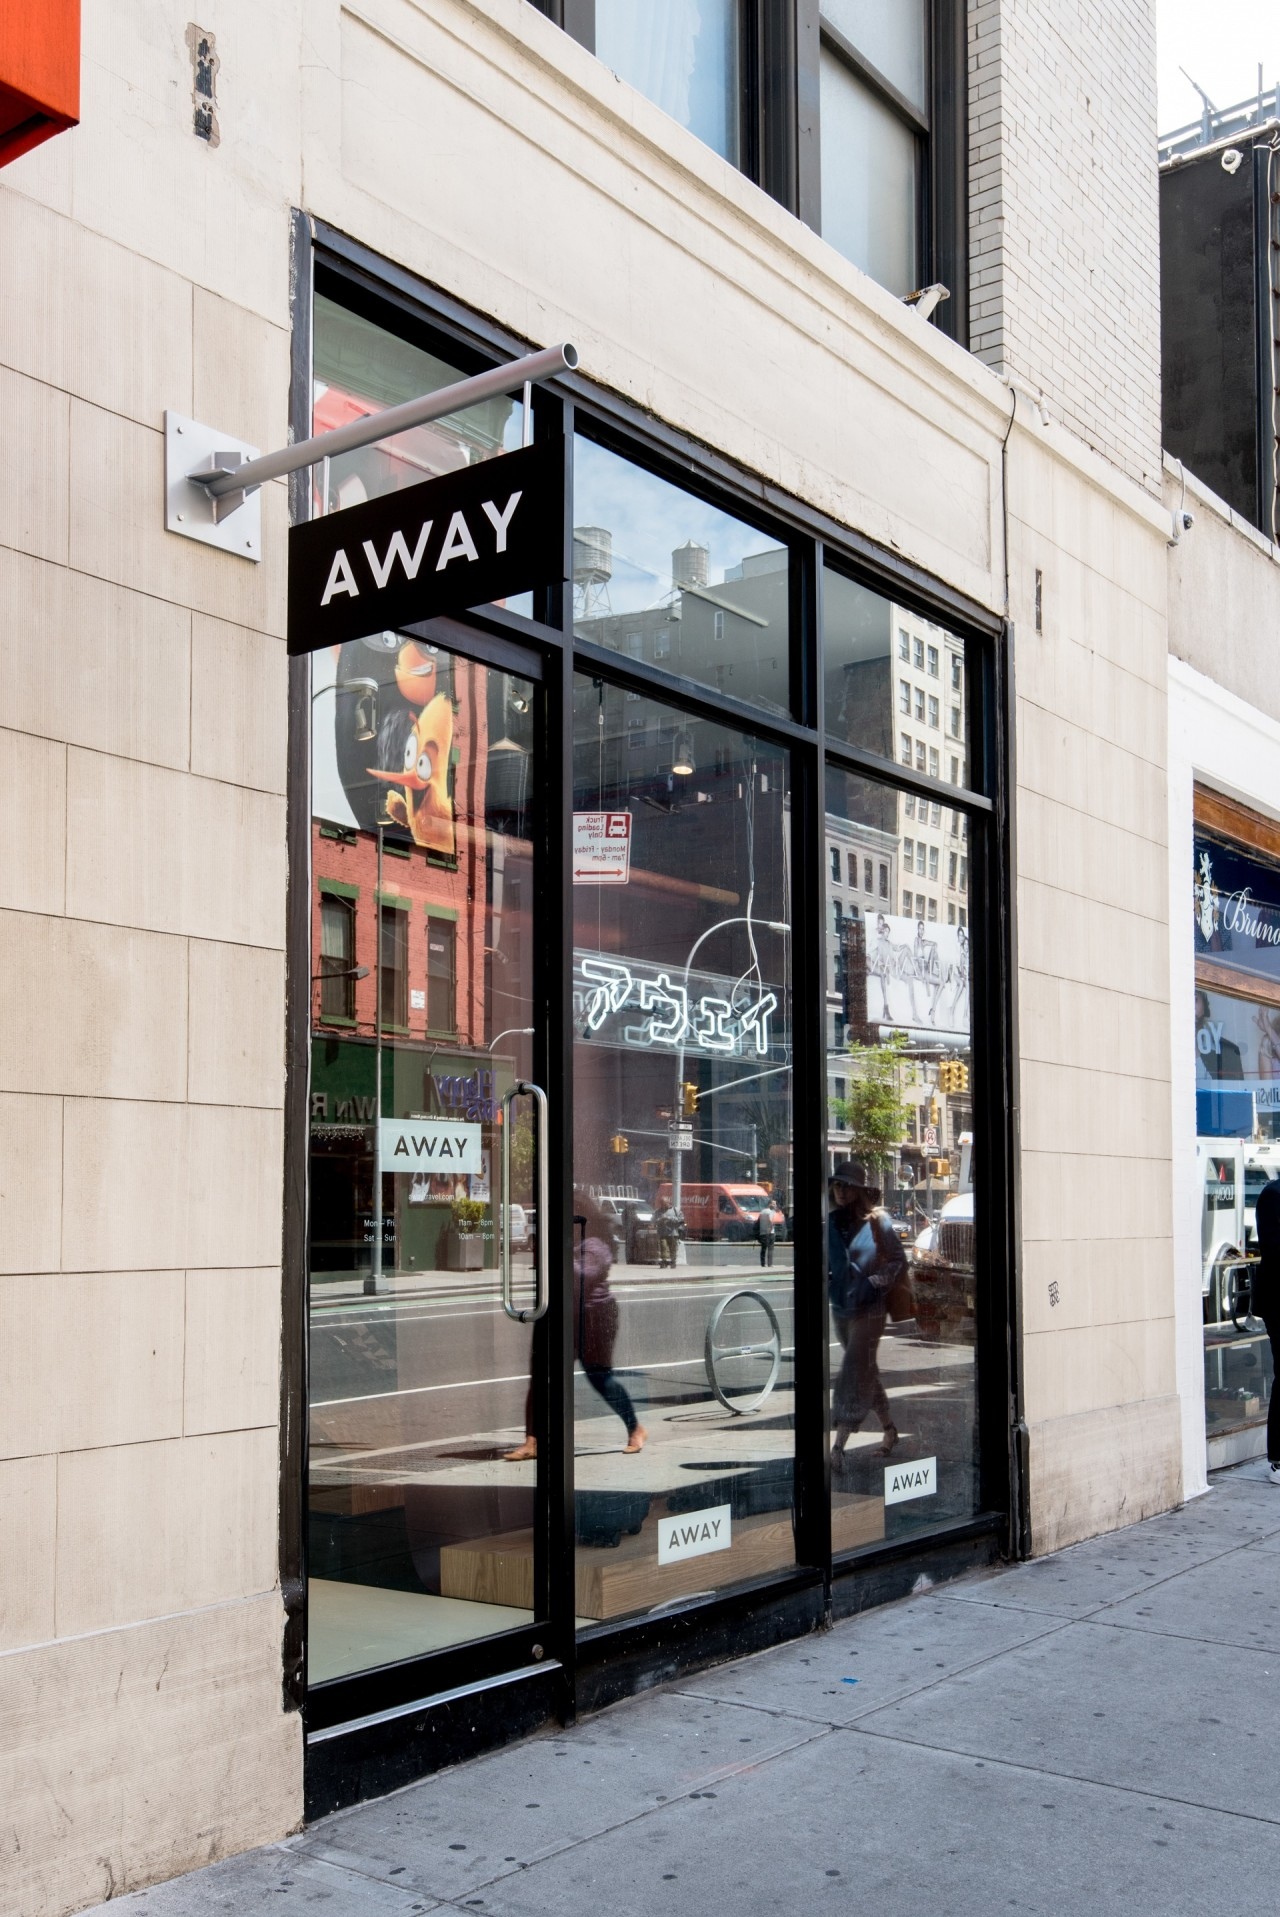 Away opens a concept store highlighting global for New ideas for retail stores